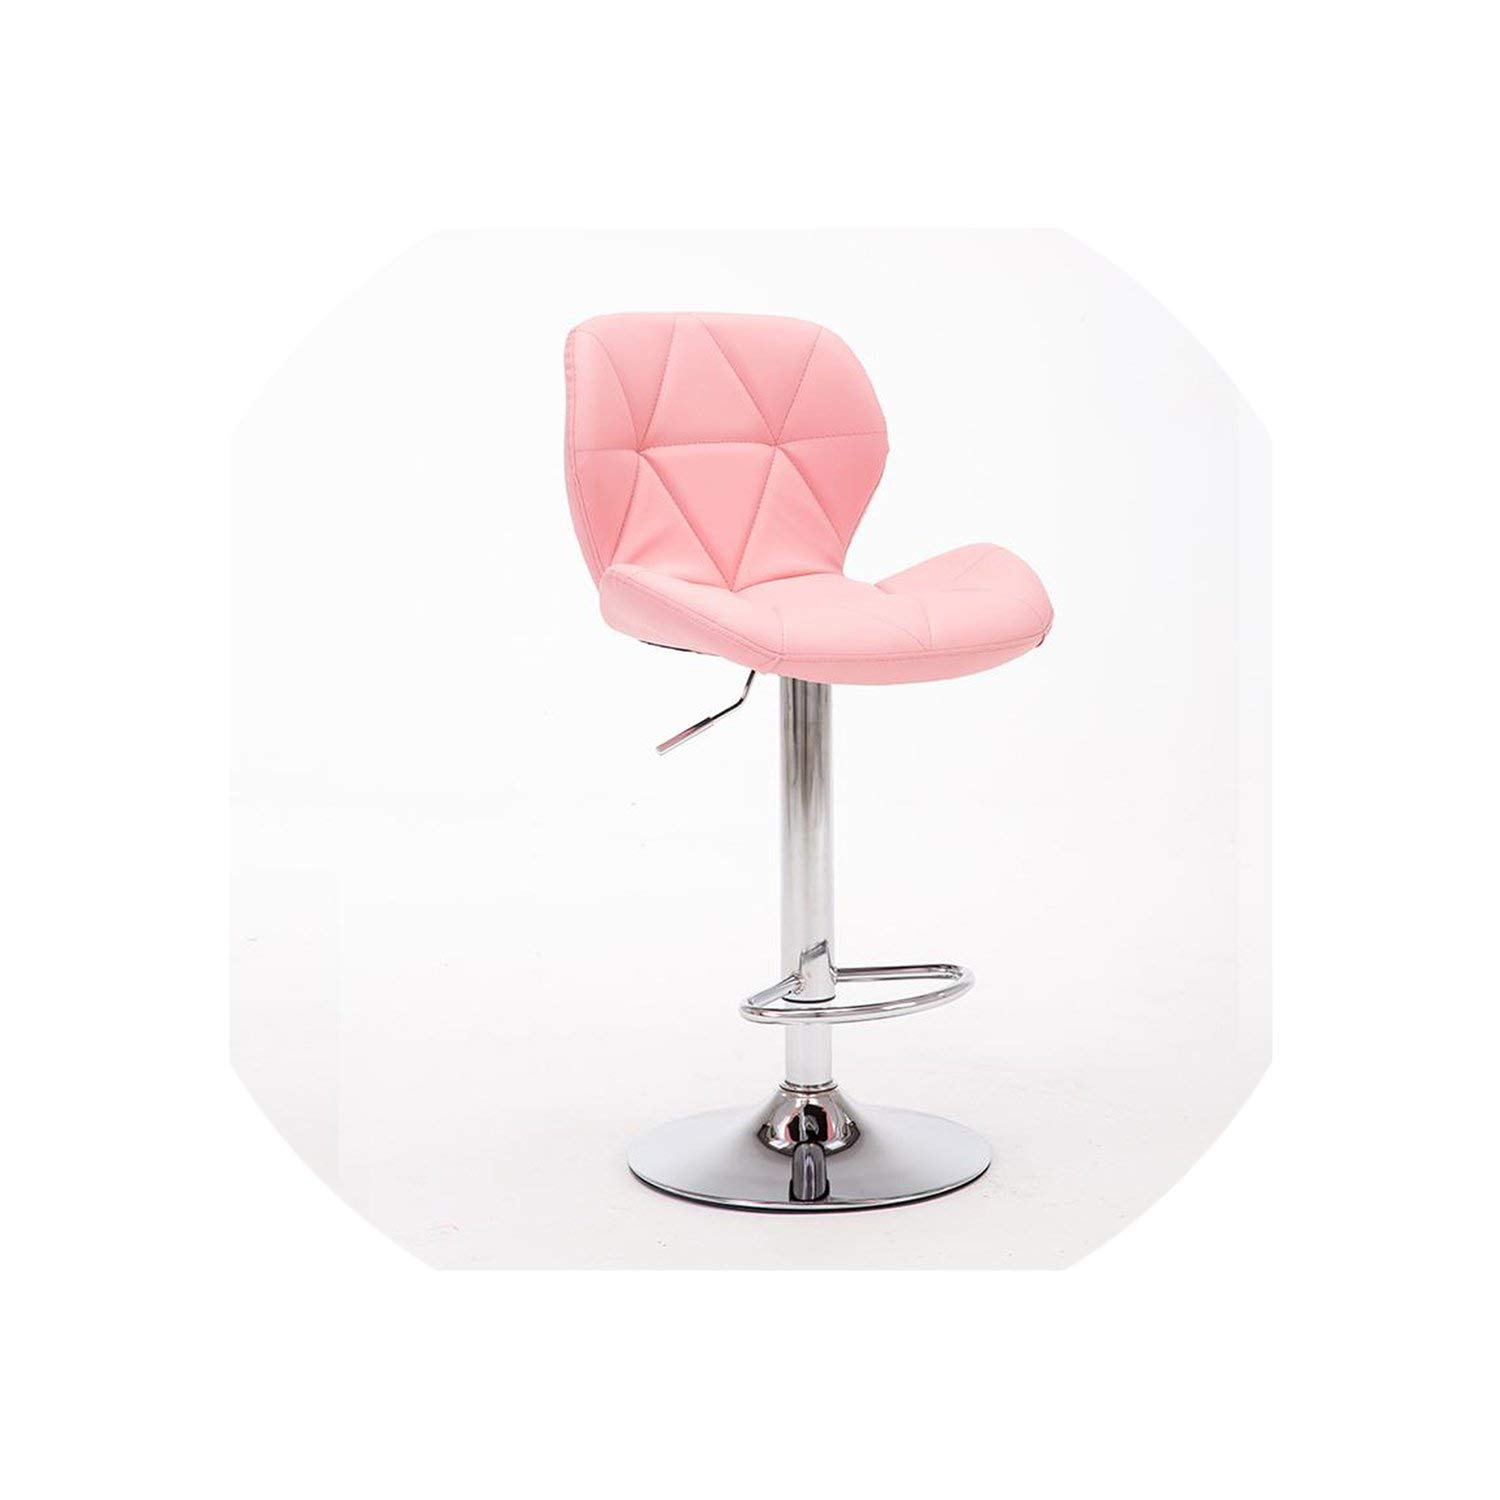 Style 1 tthappy76 New Bar Stools Bar Chair redating Lift Chair High Stools Home Fashion Creative Beauty Stool Swivel Chair,Style 9